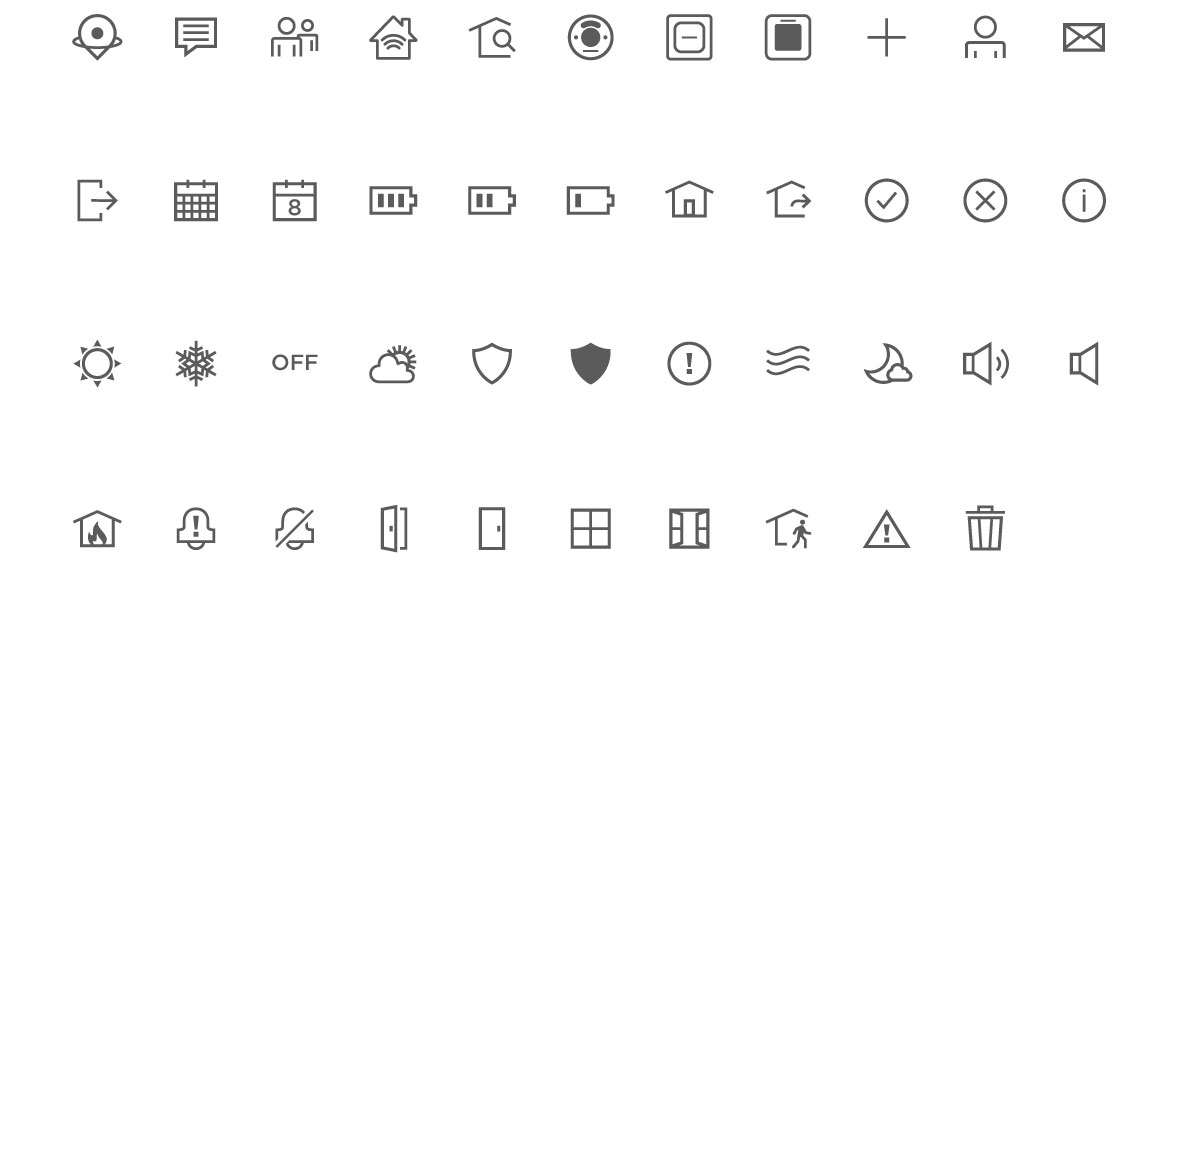 Icons_Mobile_Large